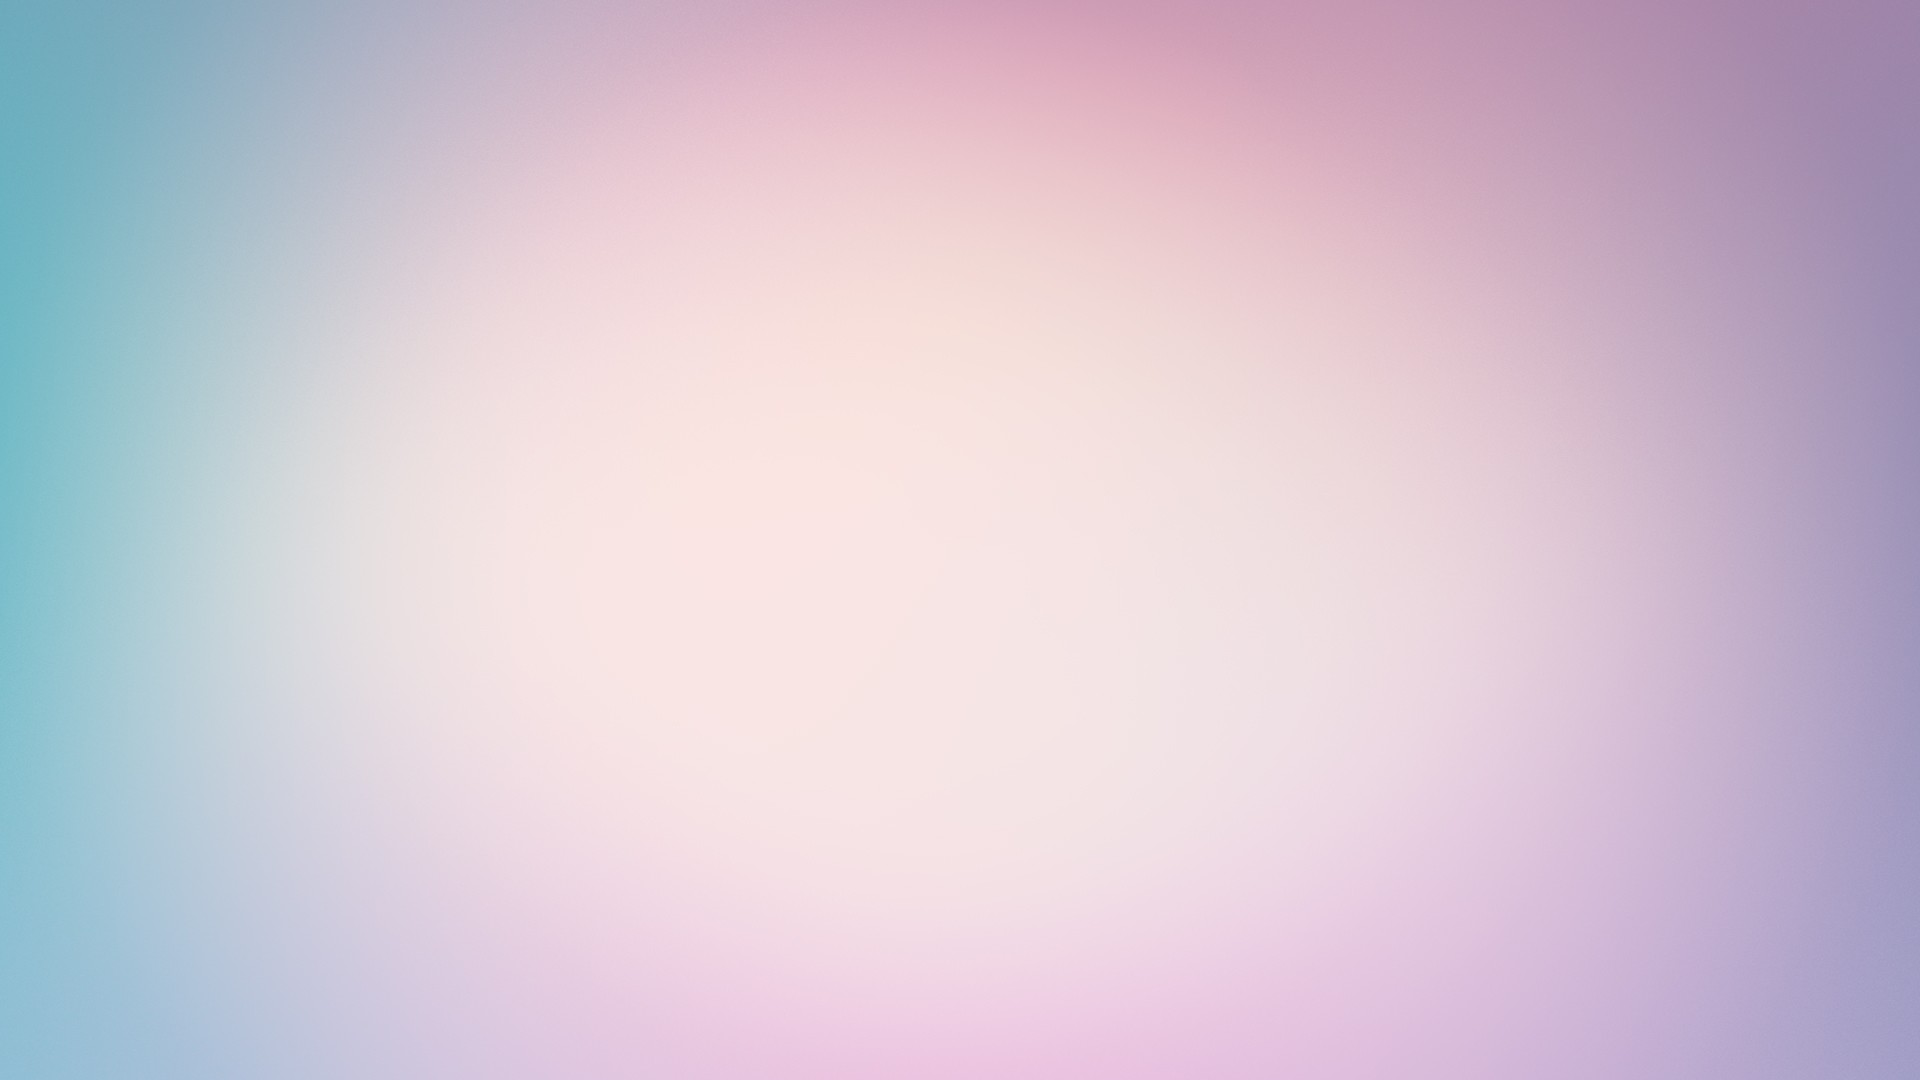 Light Pink Color Background Wallpaper x Light Pink Solid Color